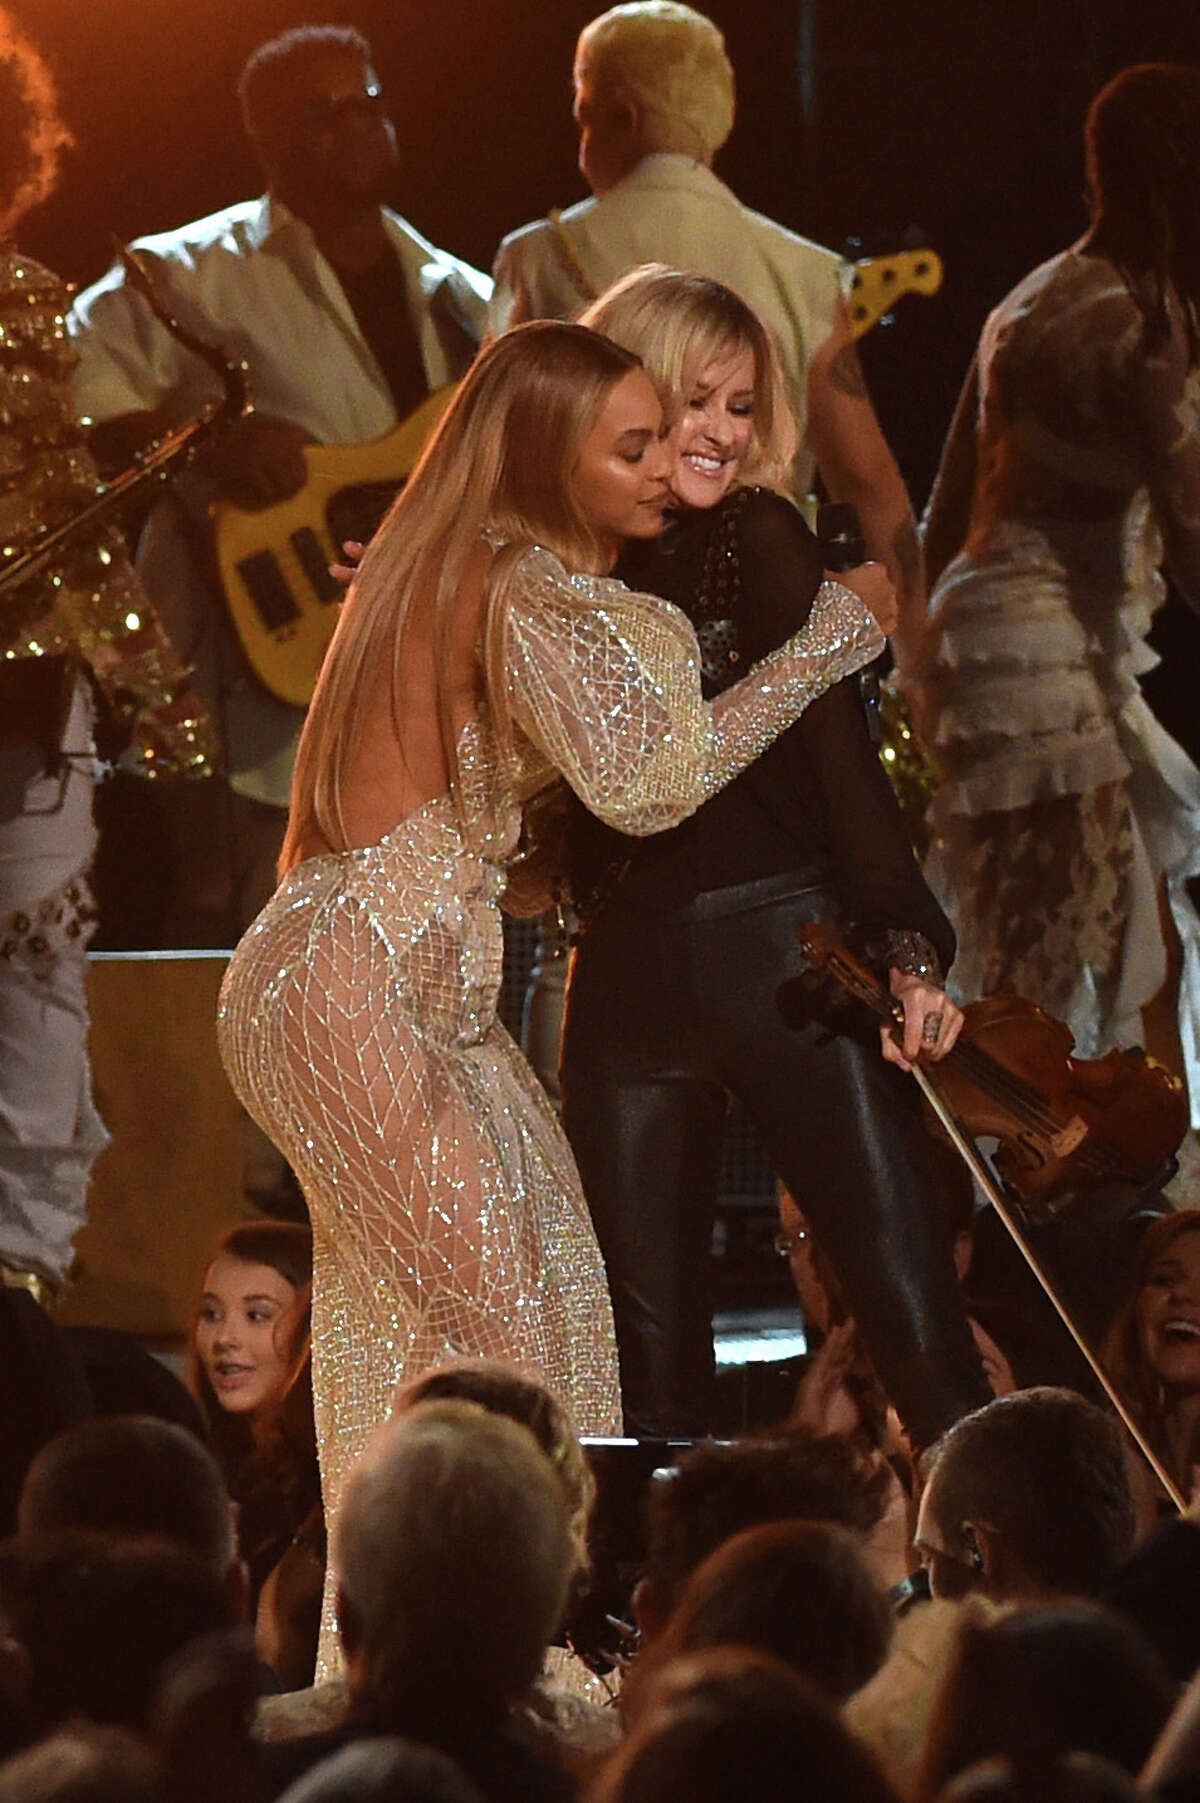 Beyonce performs onstage with Martie Maguire of Dixie Chicks at the 50th annual CMA Awards at the Bridgestone Arena in Nashville on Wednesday.